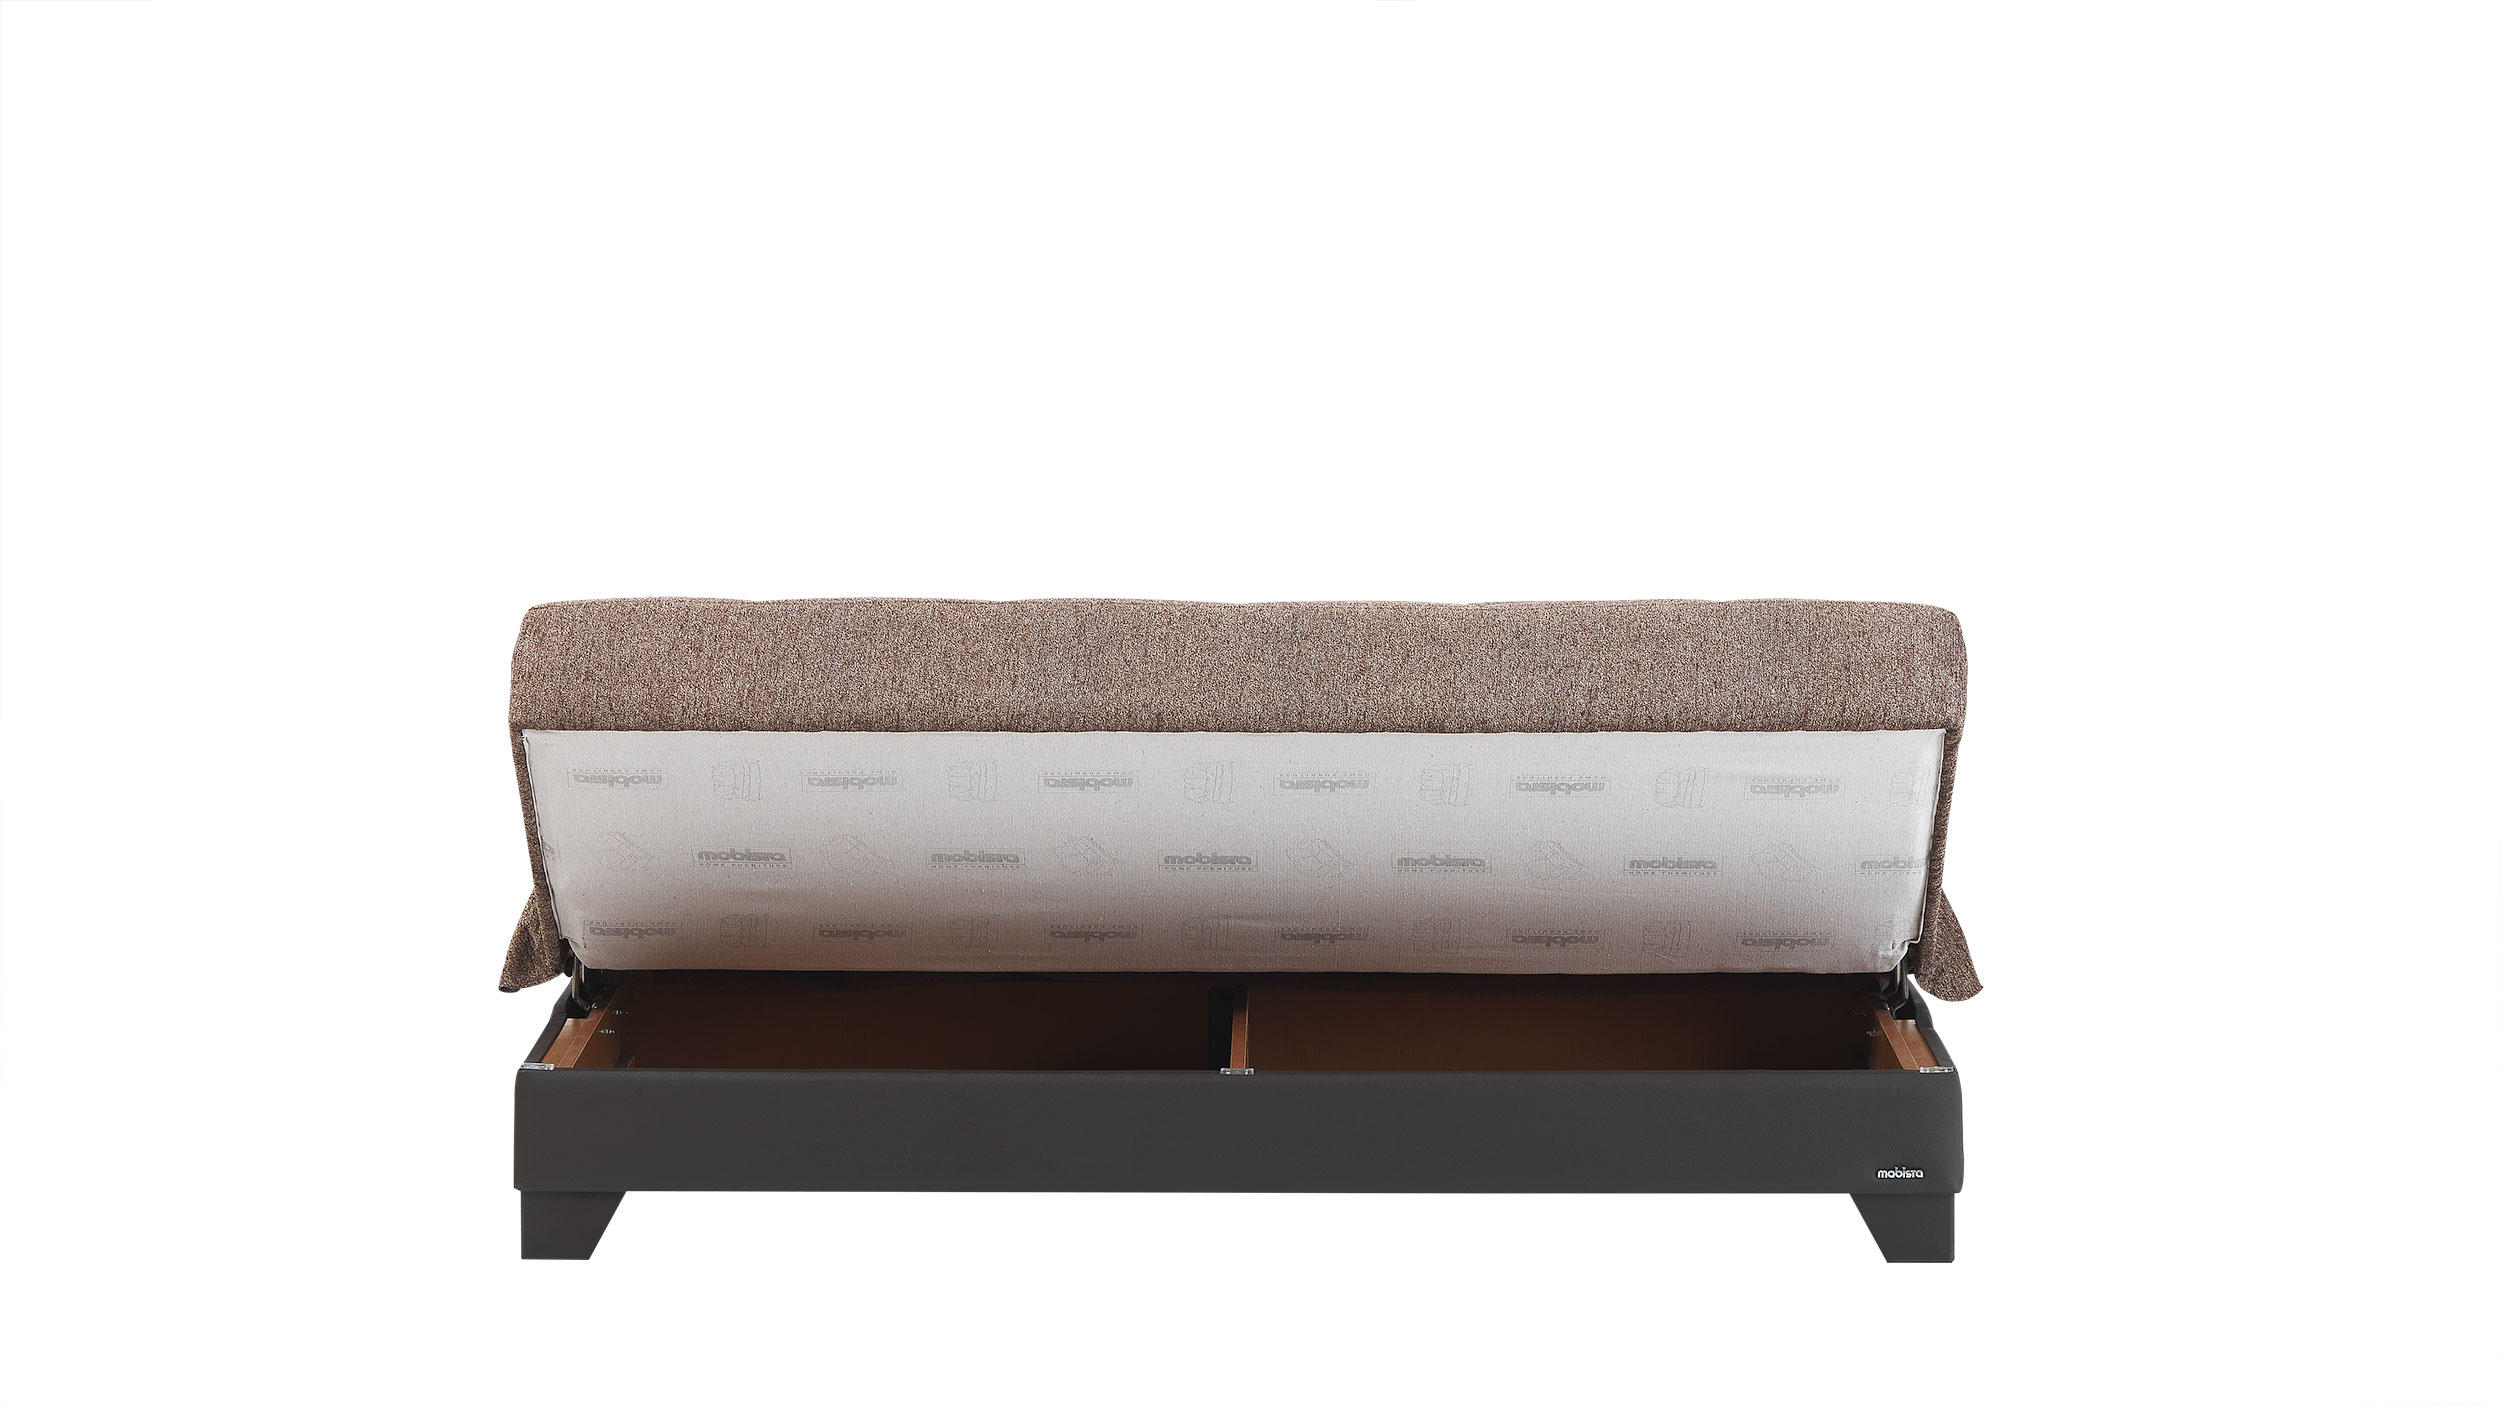 index mulberry sofa bed sectional black inter mebel dulce brown by mobista